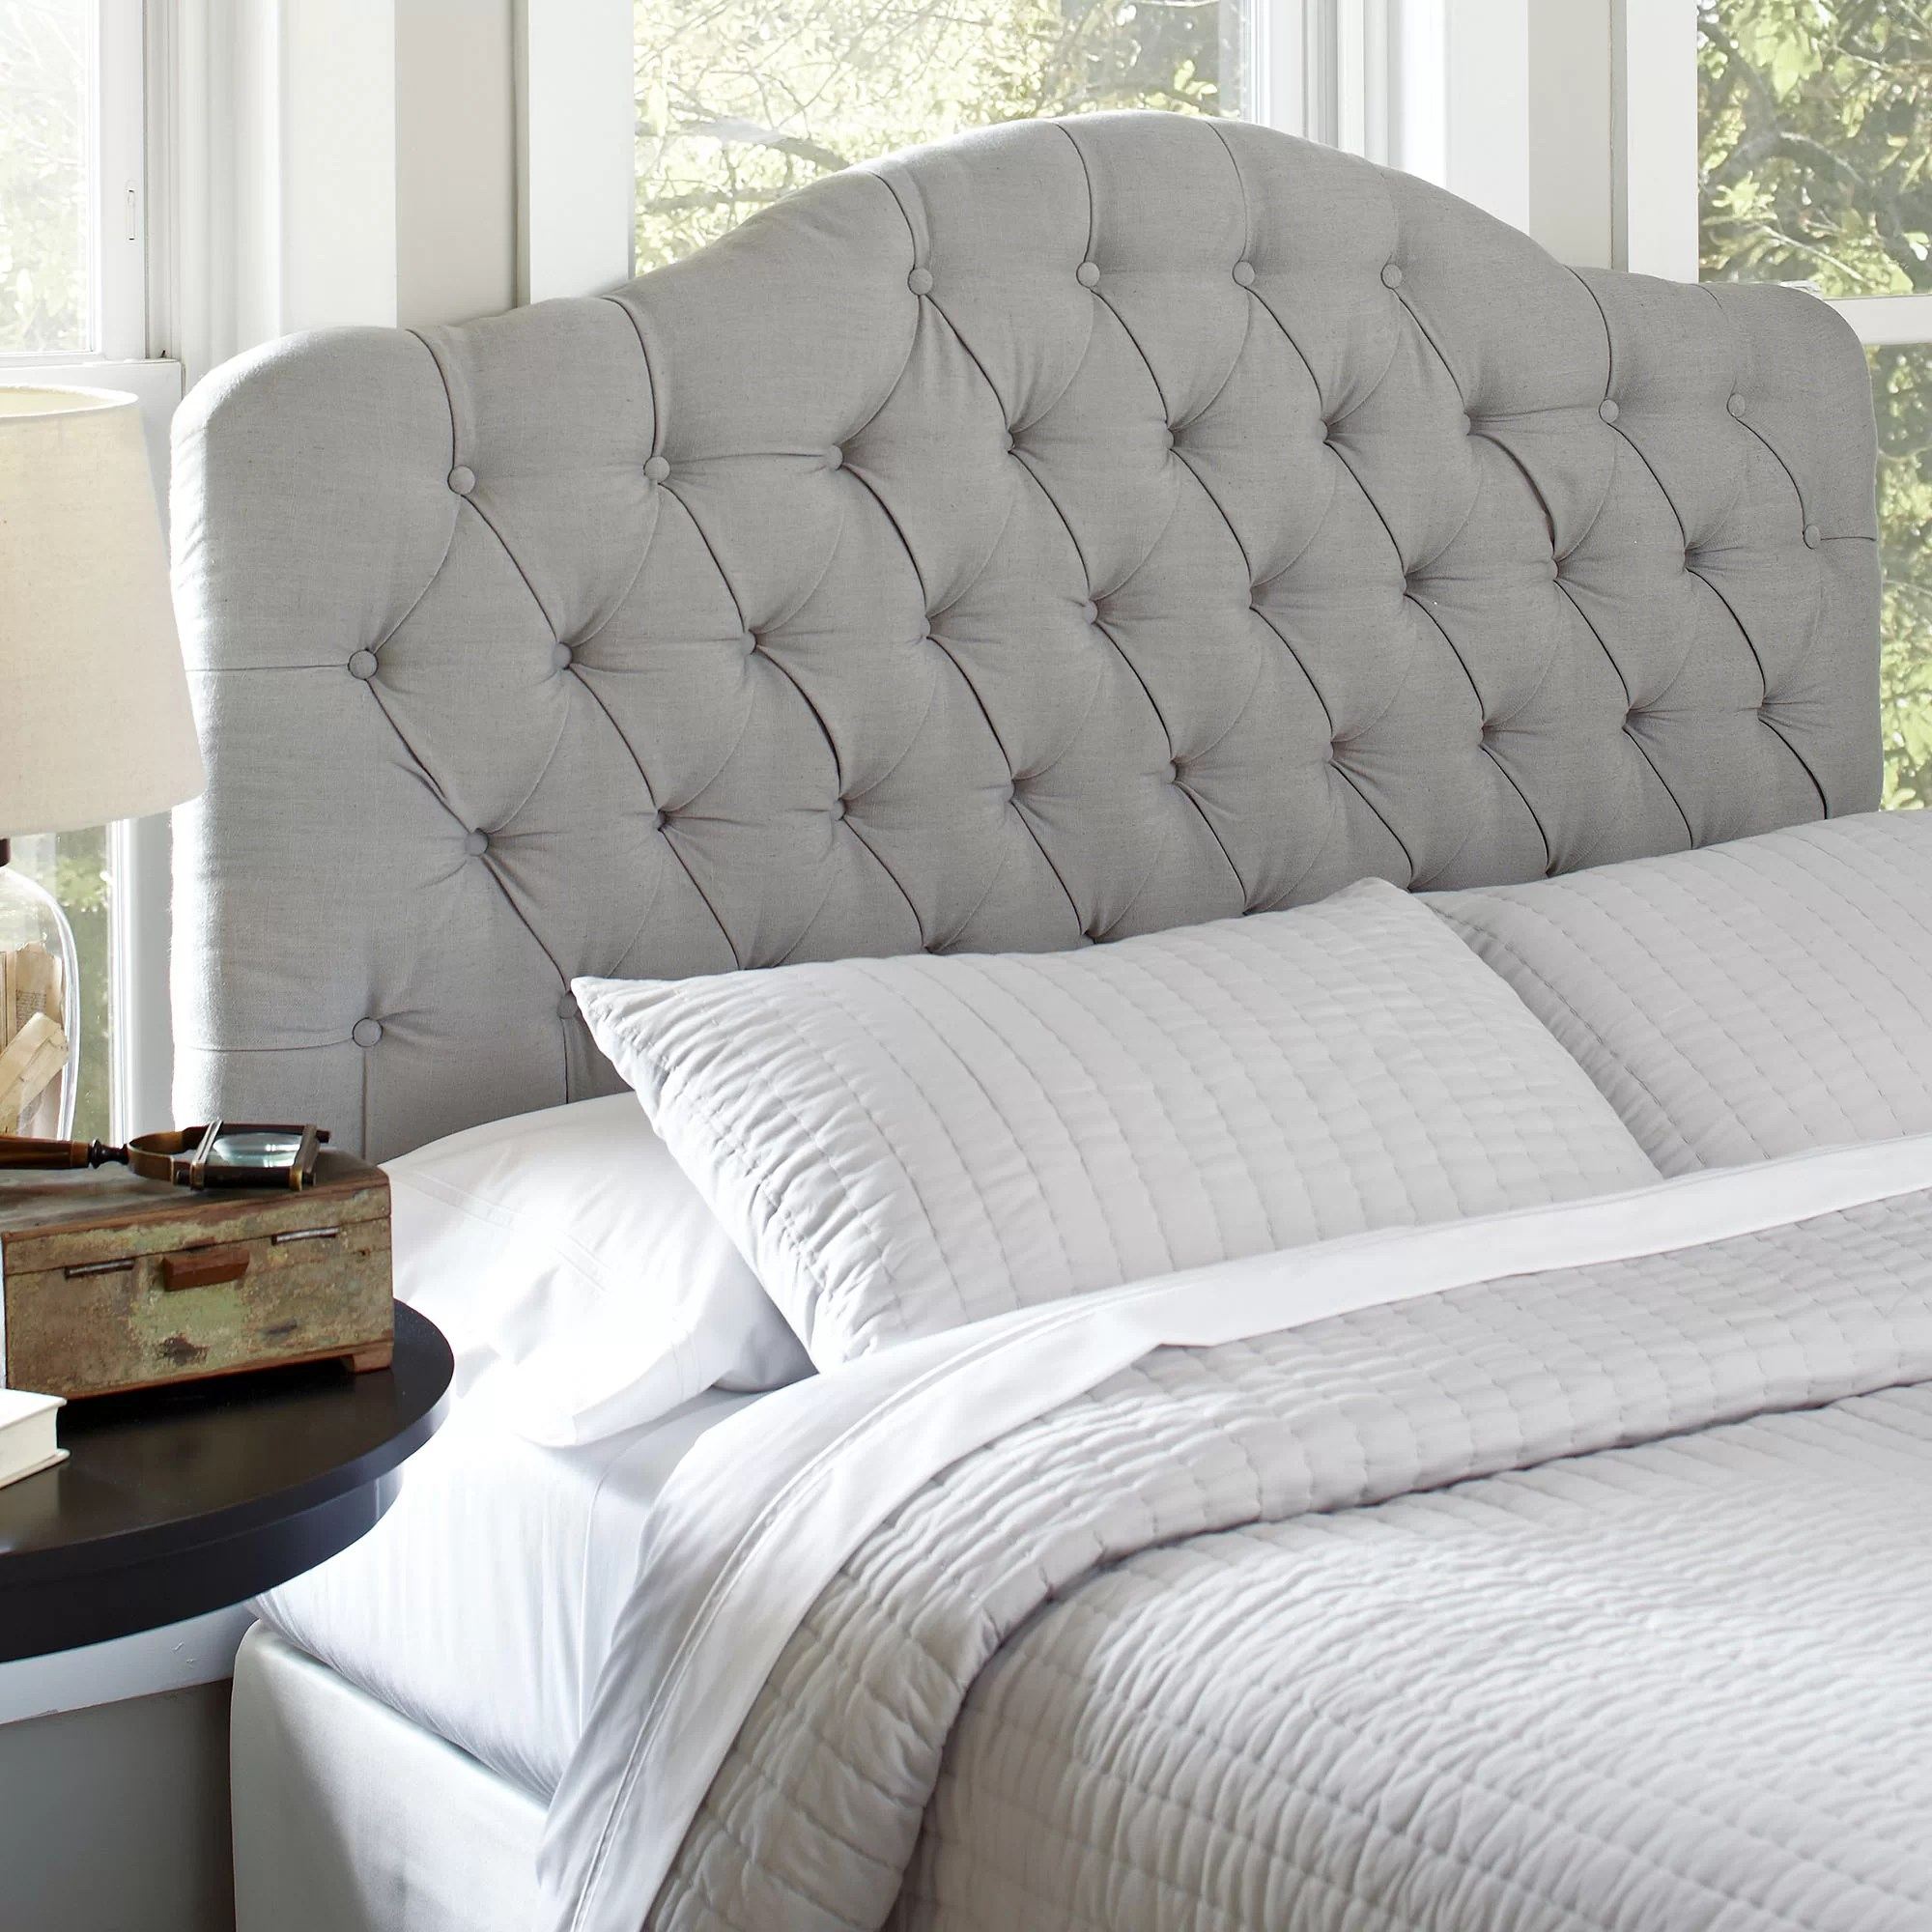 Bed Headboard Genevra Upholstered Panel Headboard